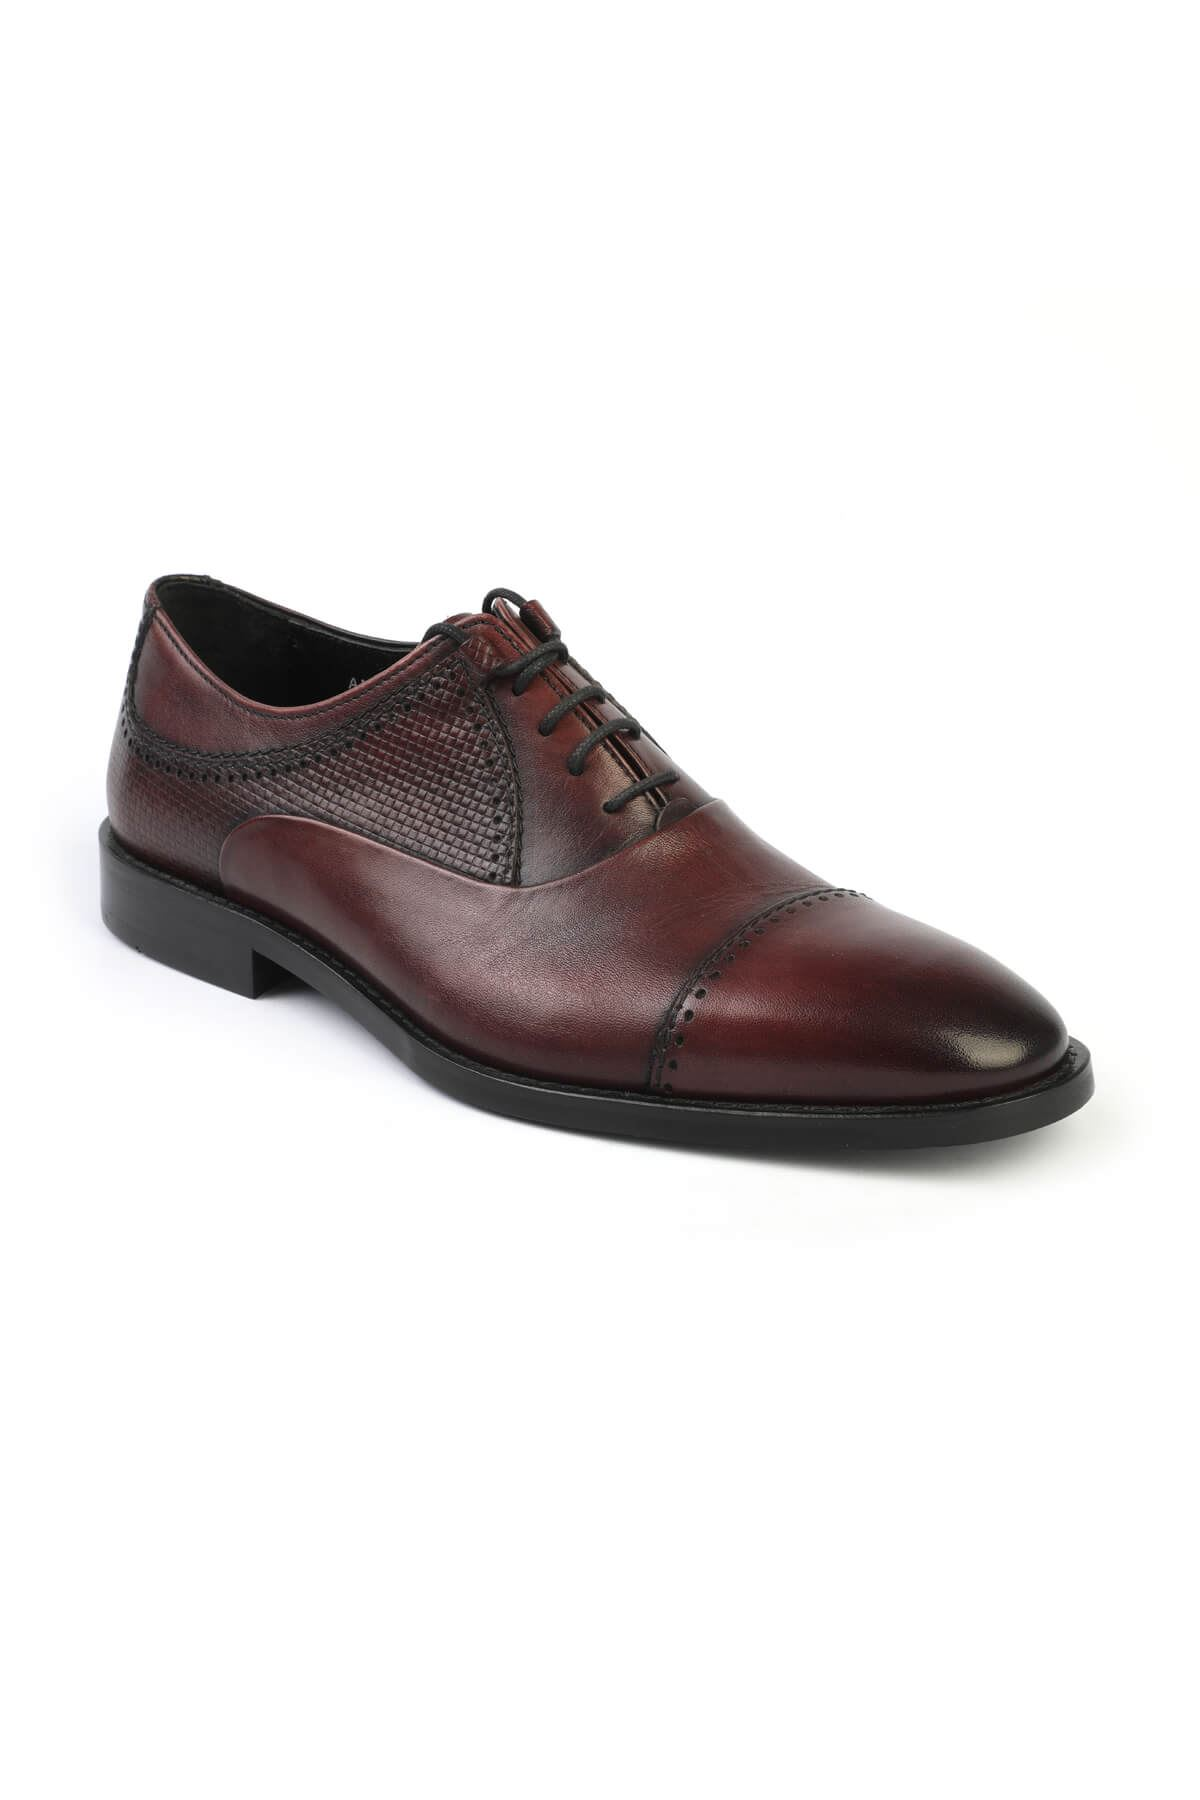 Libero 2720 Claret Red Classic Shoes